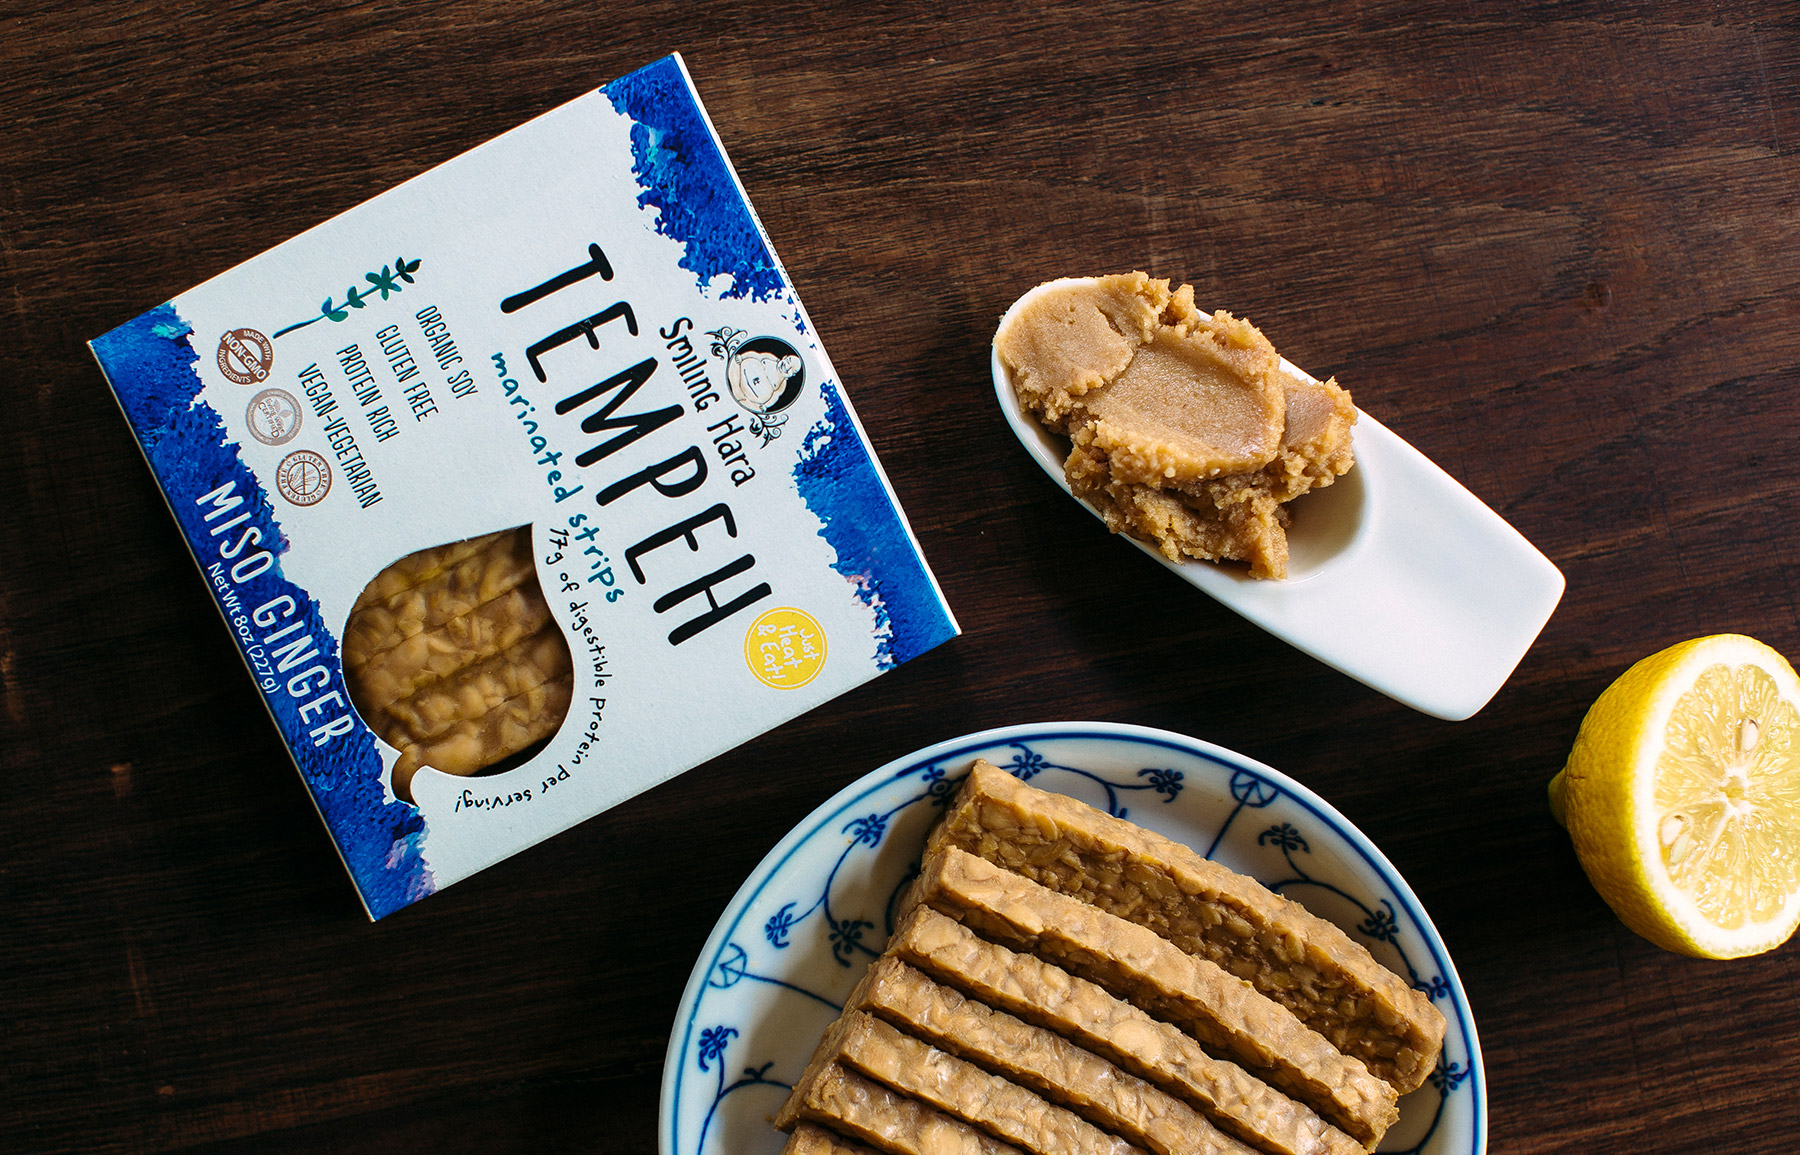 Miso Ginger Tempeh meal preparation